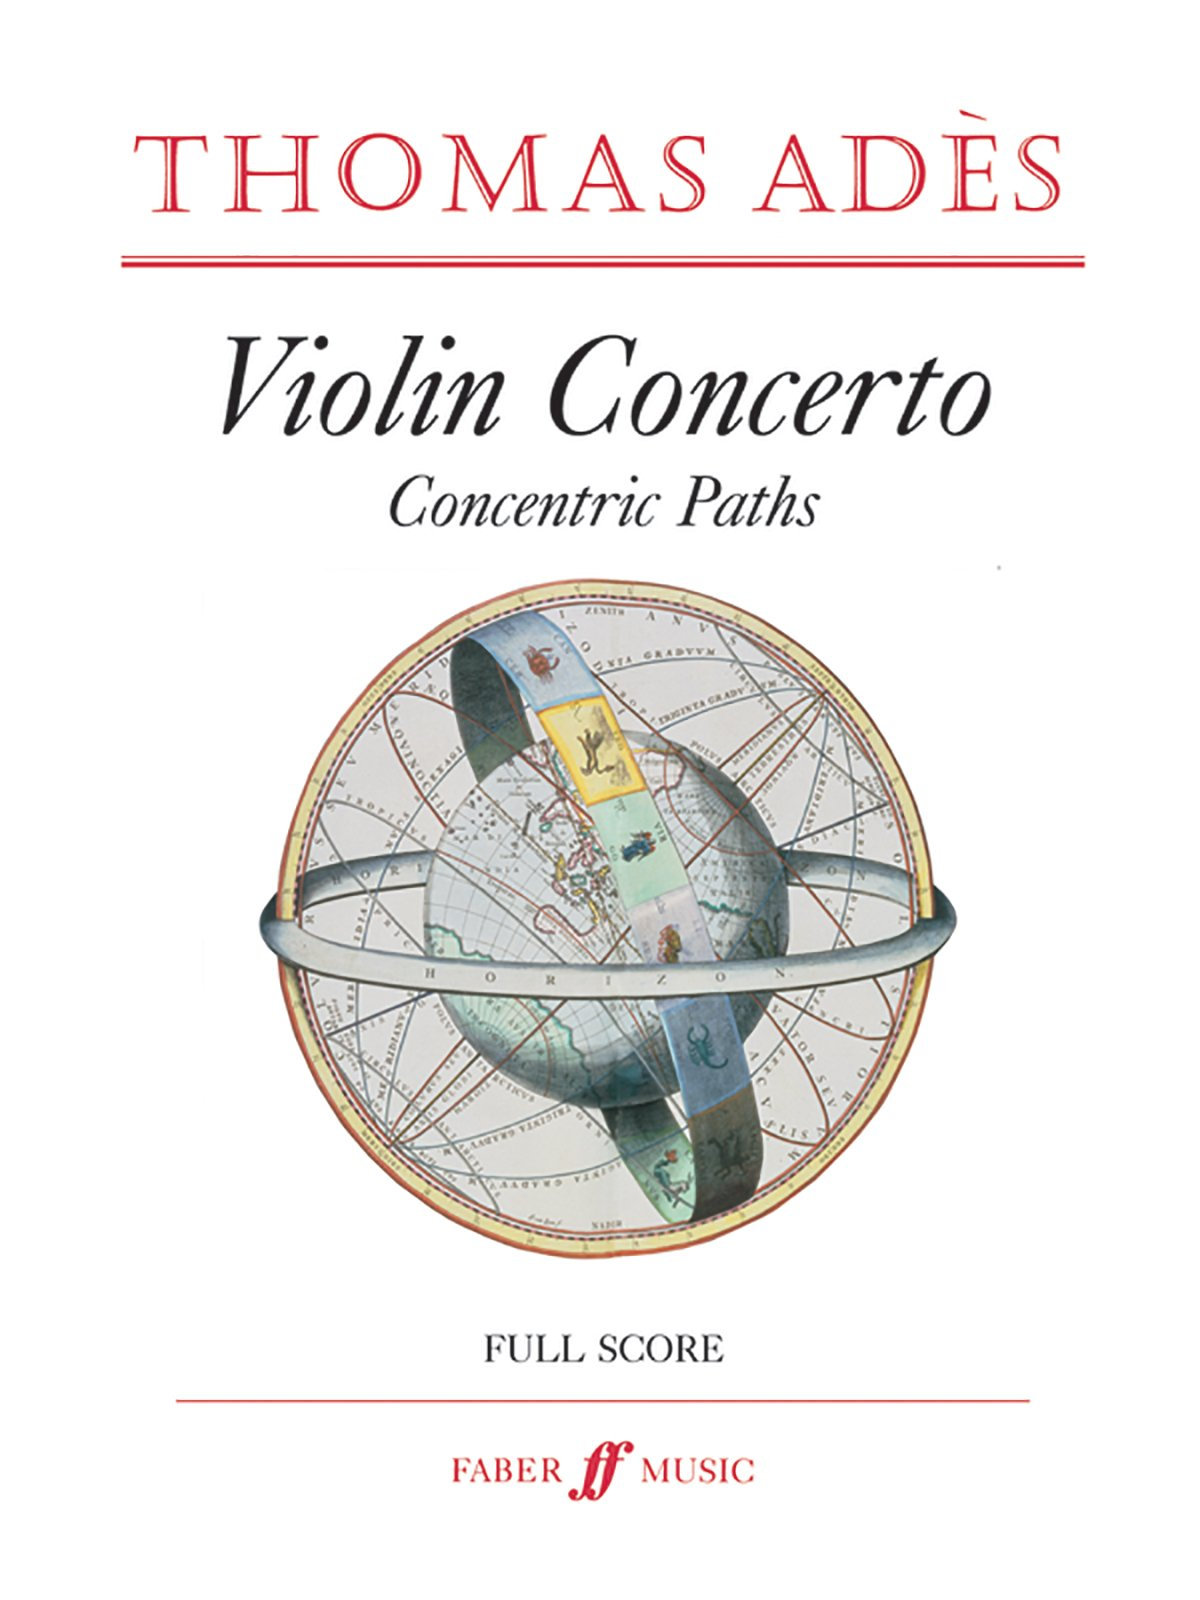 Download Violin Concerto: Concentric Paths, Score (Faber Edition) pdf